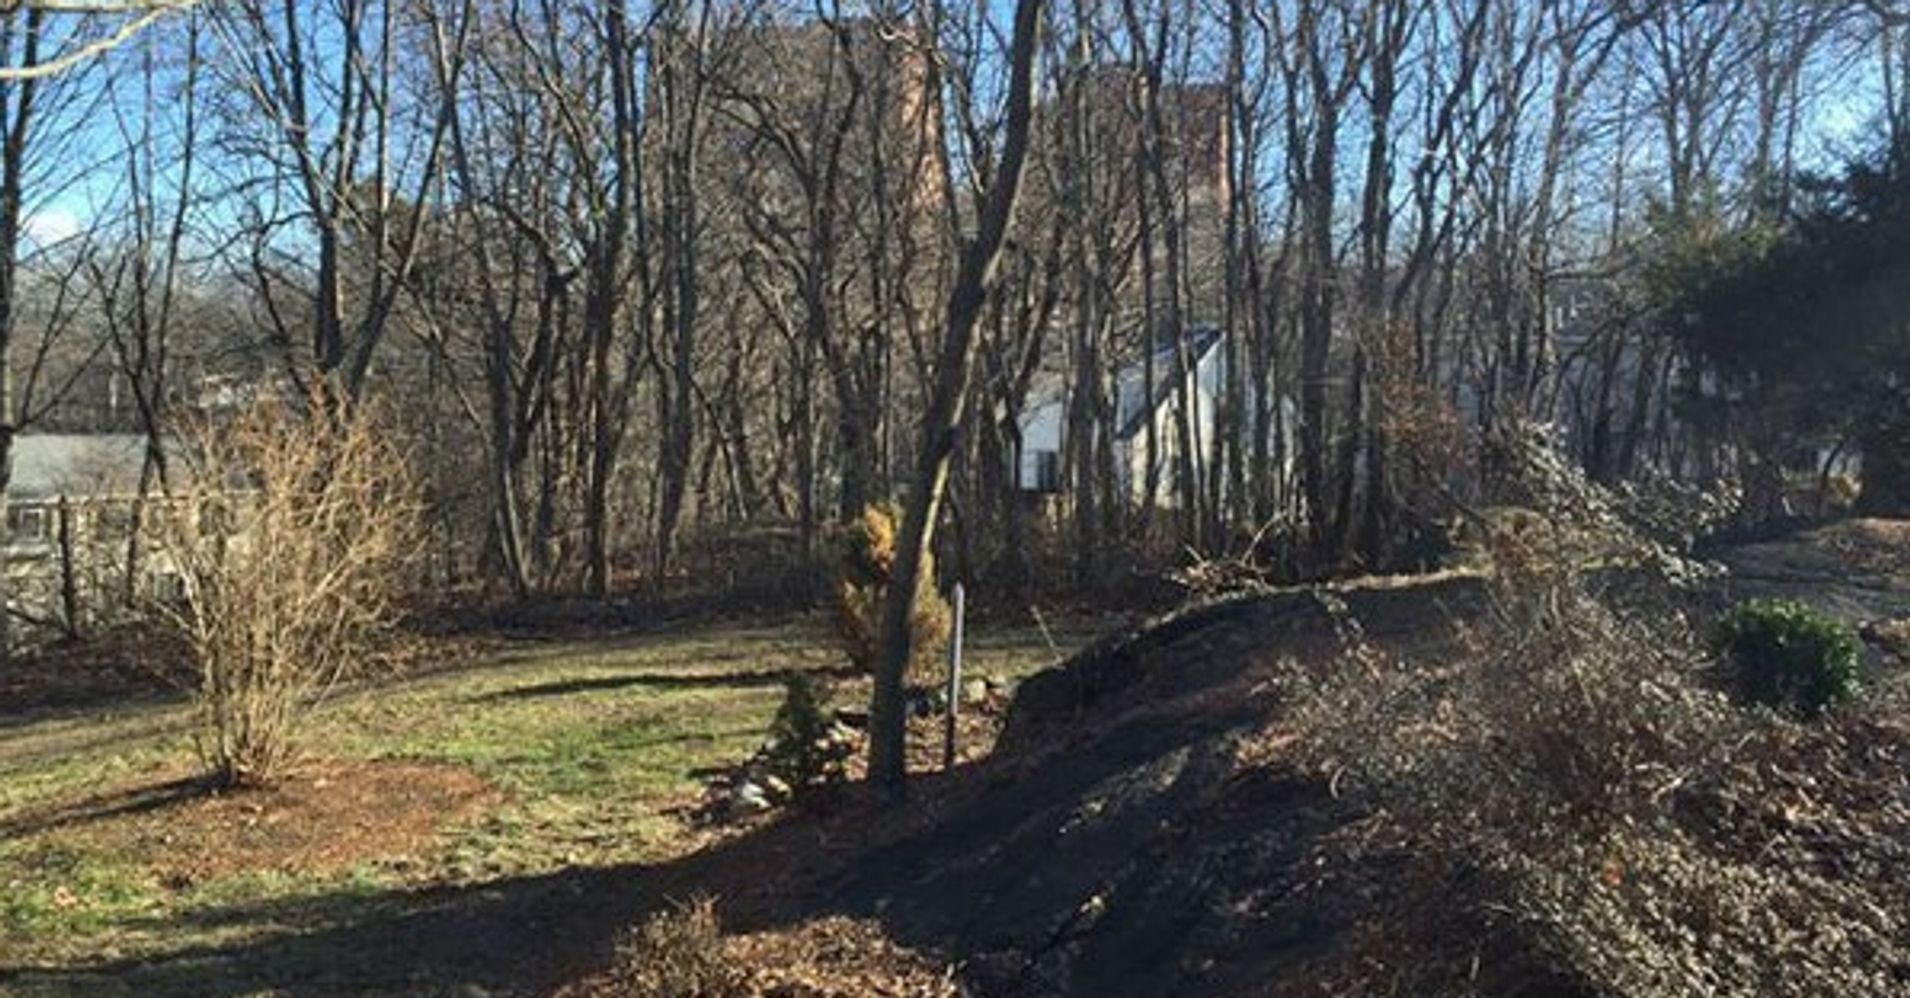 Salem Witch Trials Execution Site Found, And Its Behind A